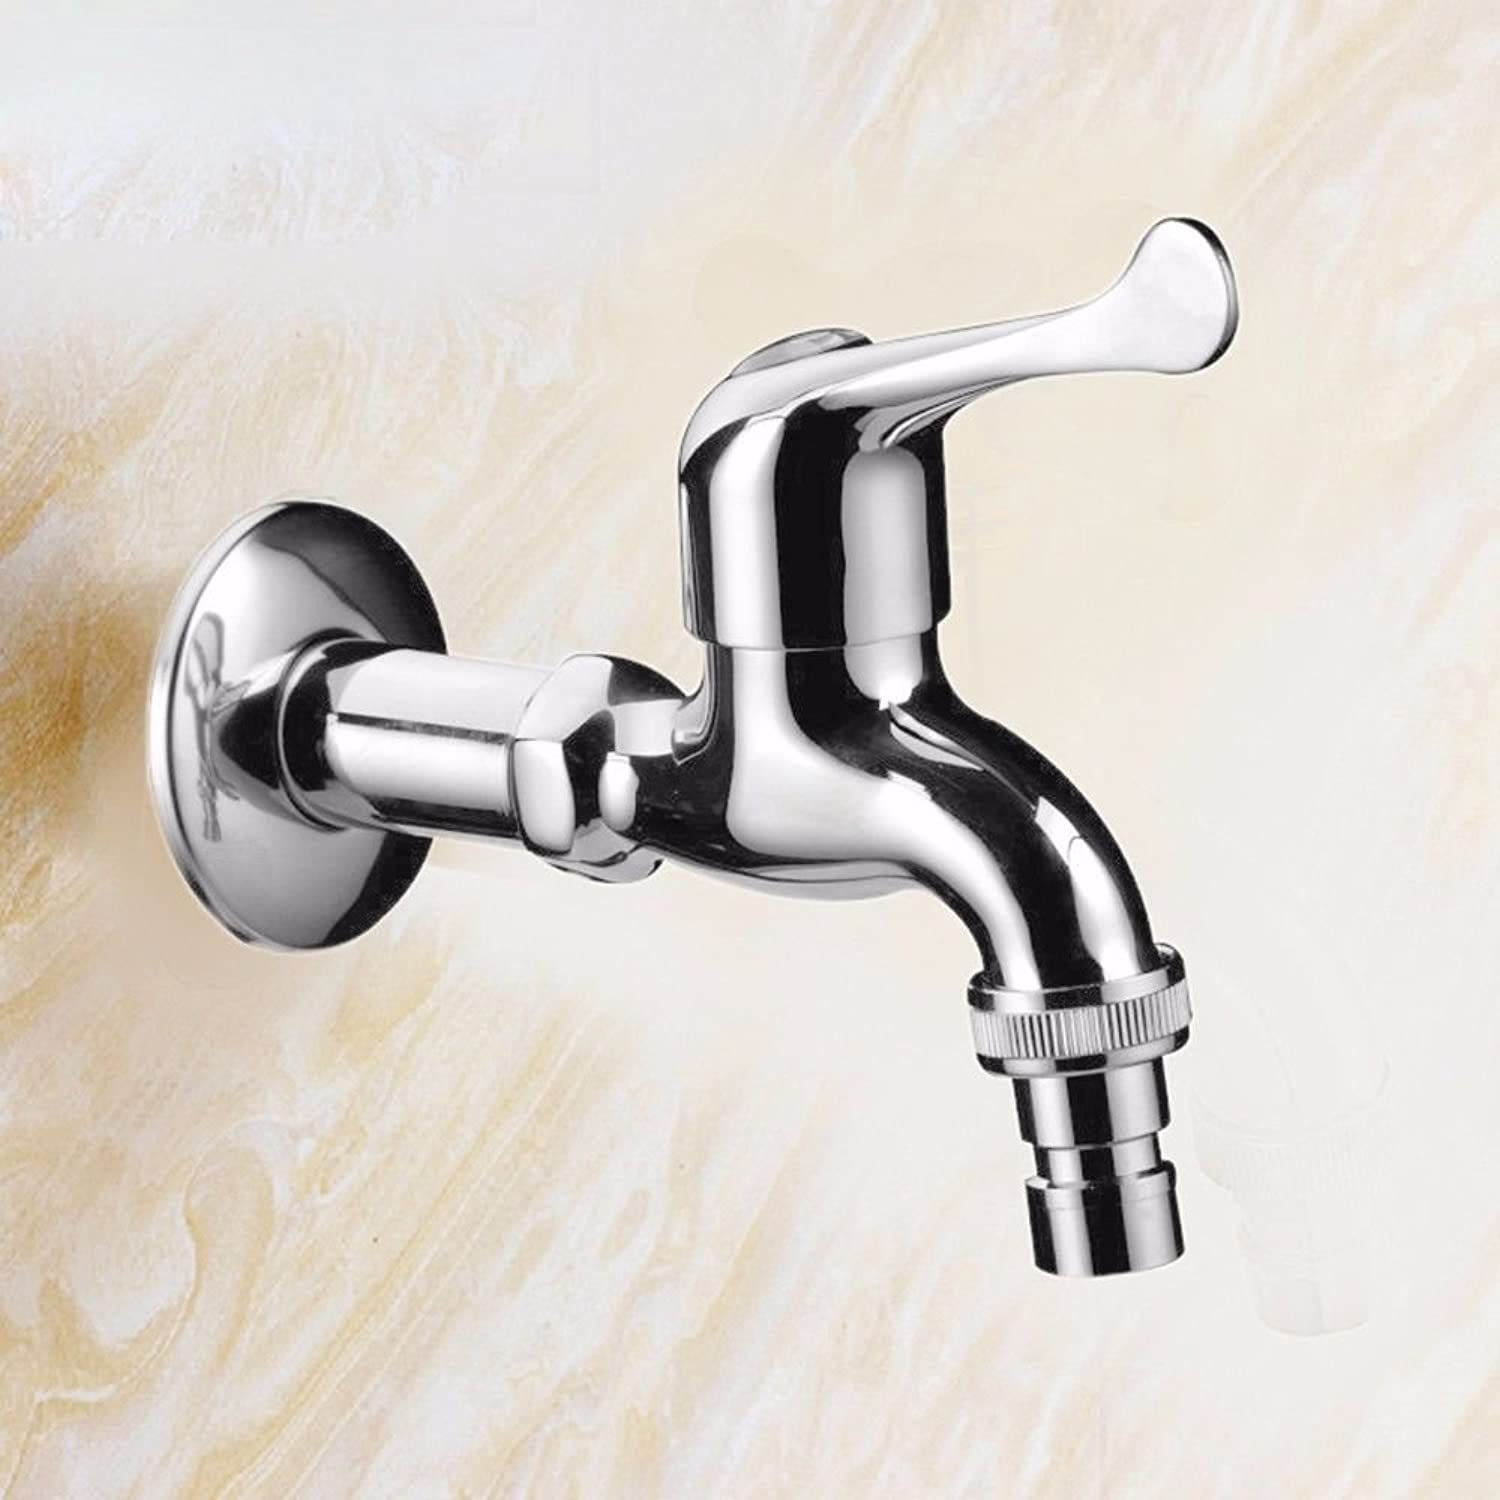 Lpophy Bathroom Sink Mixer Taps Faucet Bath Waterfall Cold and Hot Water Tap for Washroom Bathroom and Kitchen All Copper Single Cold All 4 Points Fast Open Water Nozzle Into The Wall